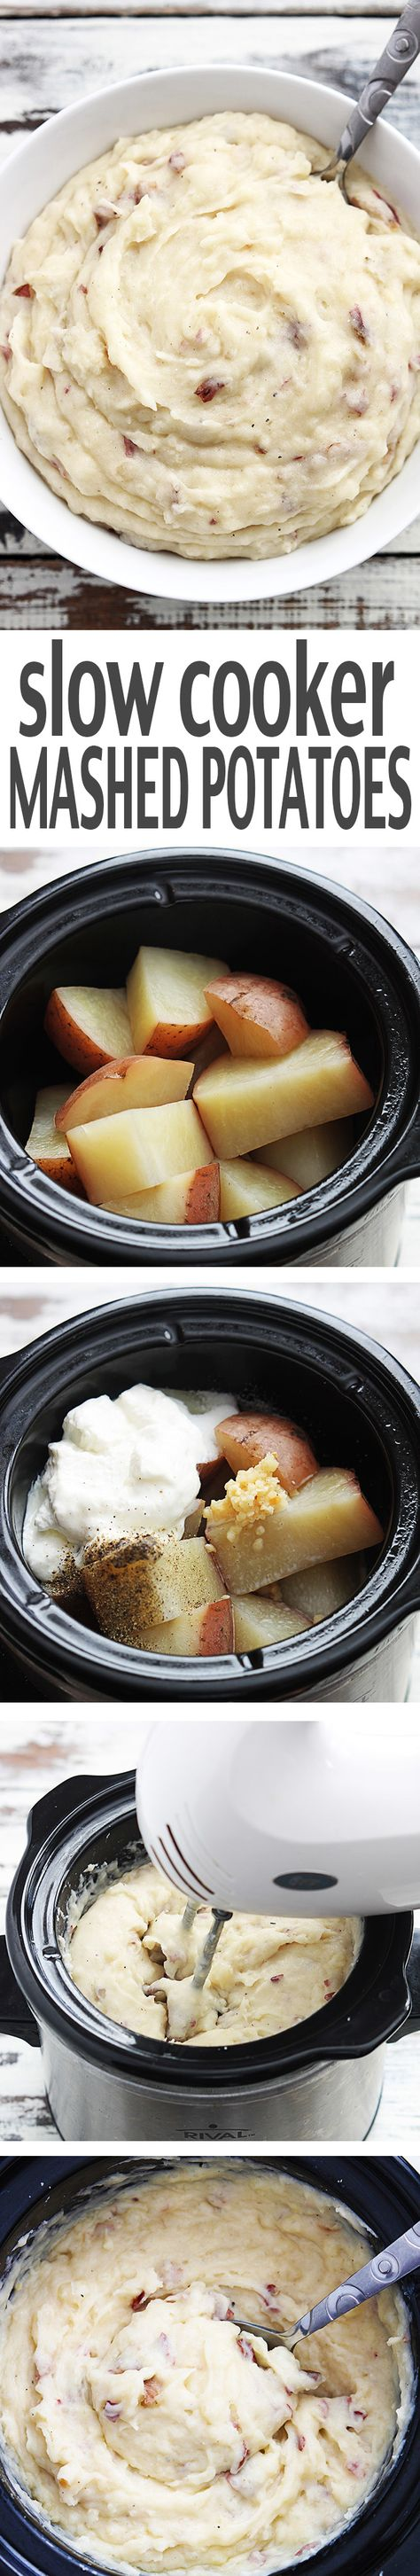 These slow cooker mashed potatoes will change your life. Creamy, tons of flavor, and seriously the easiest mashed potatoes you will ever make - youll never go back to boiling and smashing! #crockpot #crock-pot #recipes #delicious #recipe #slowcooker